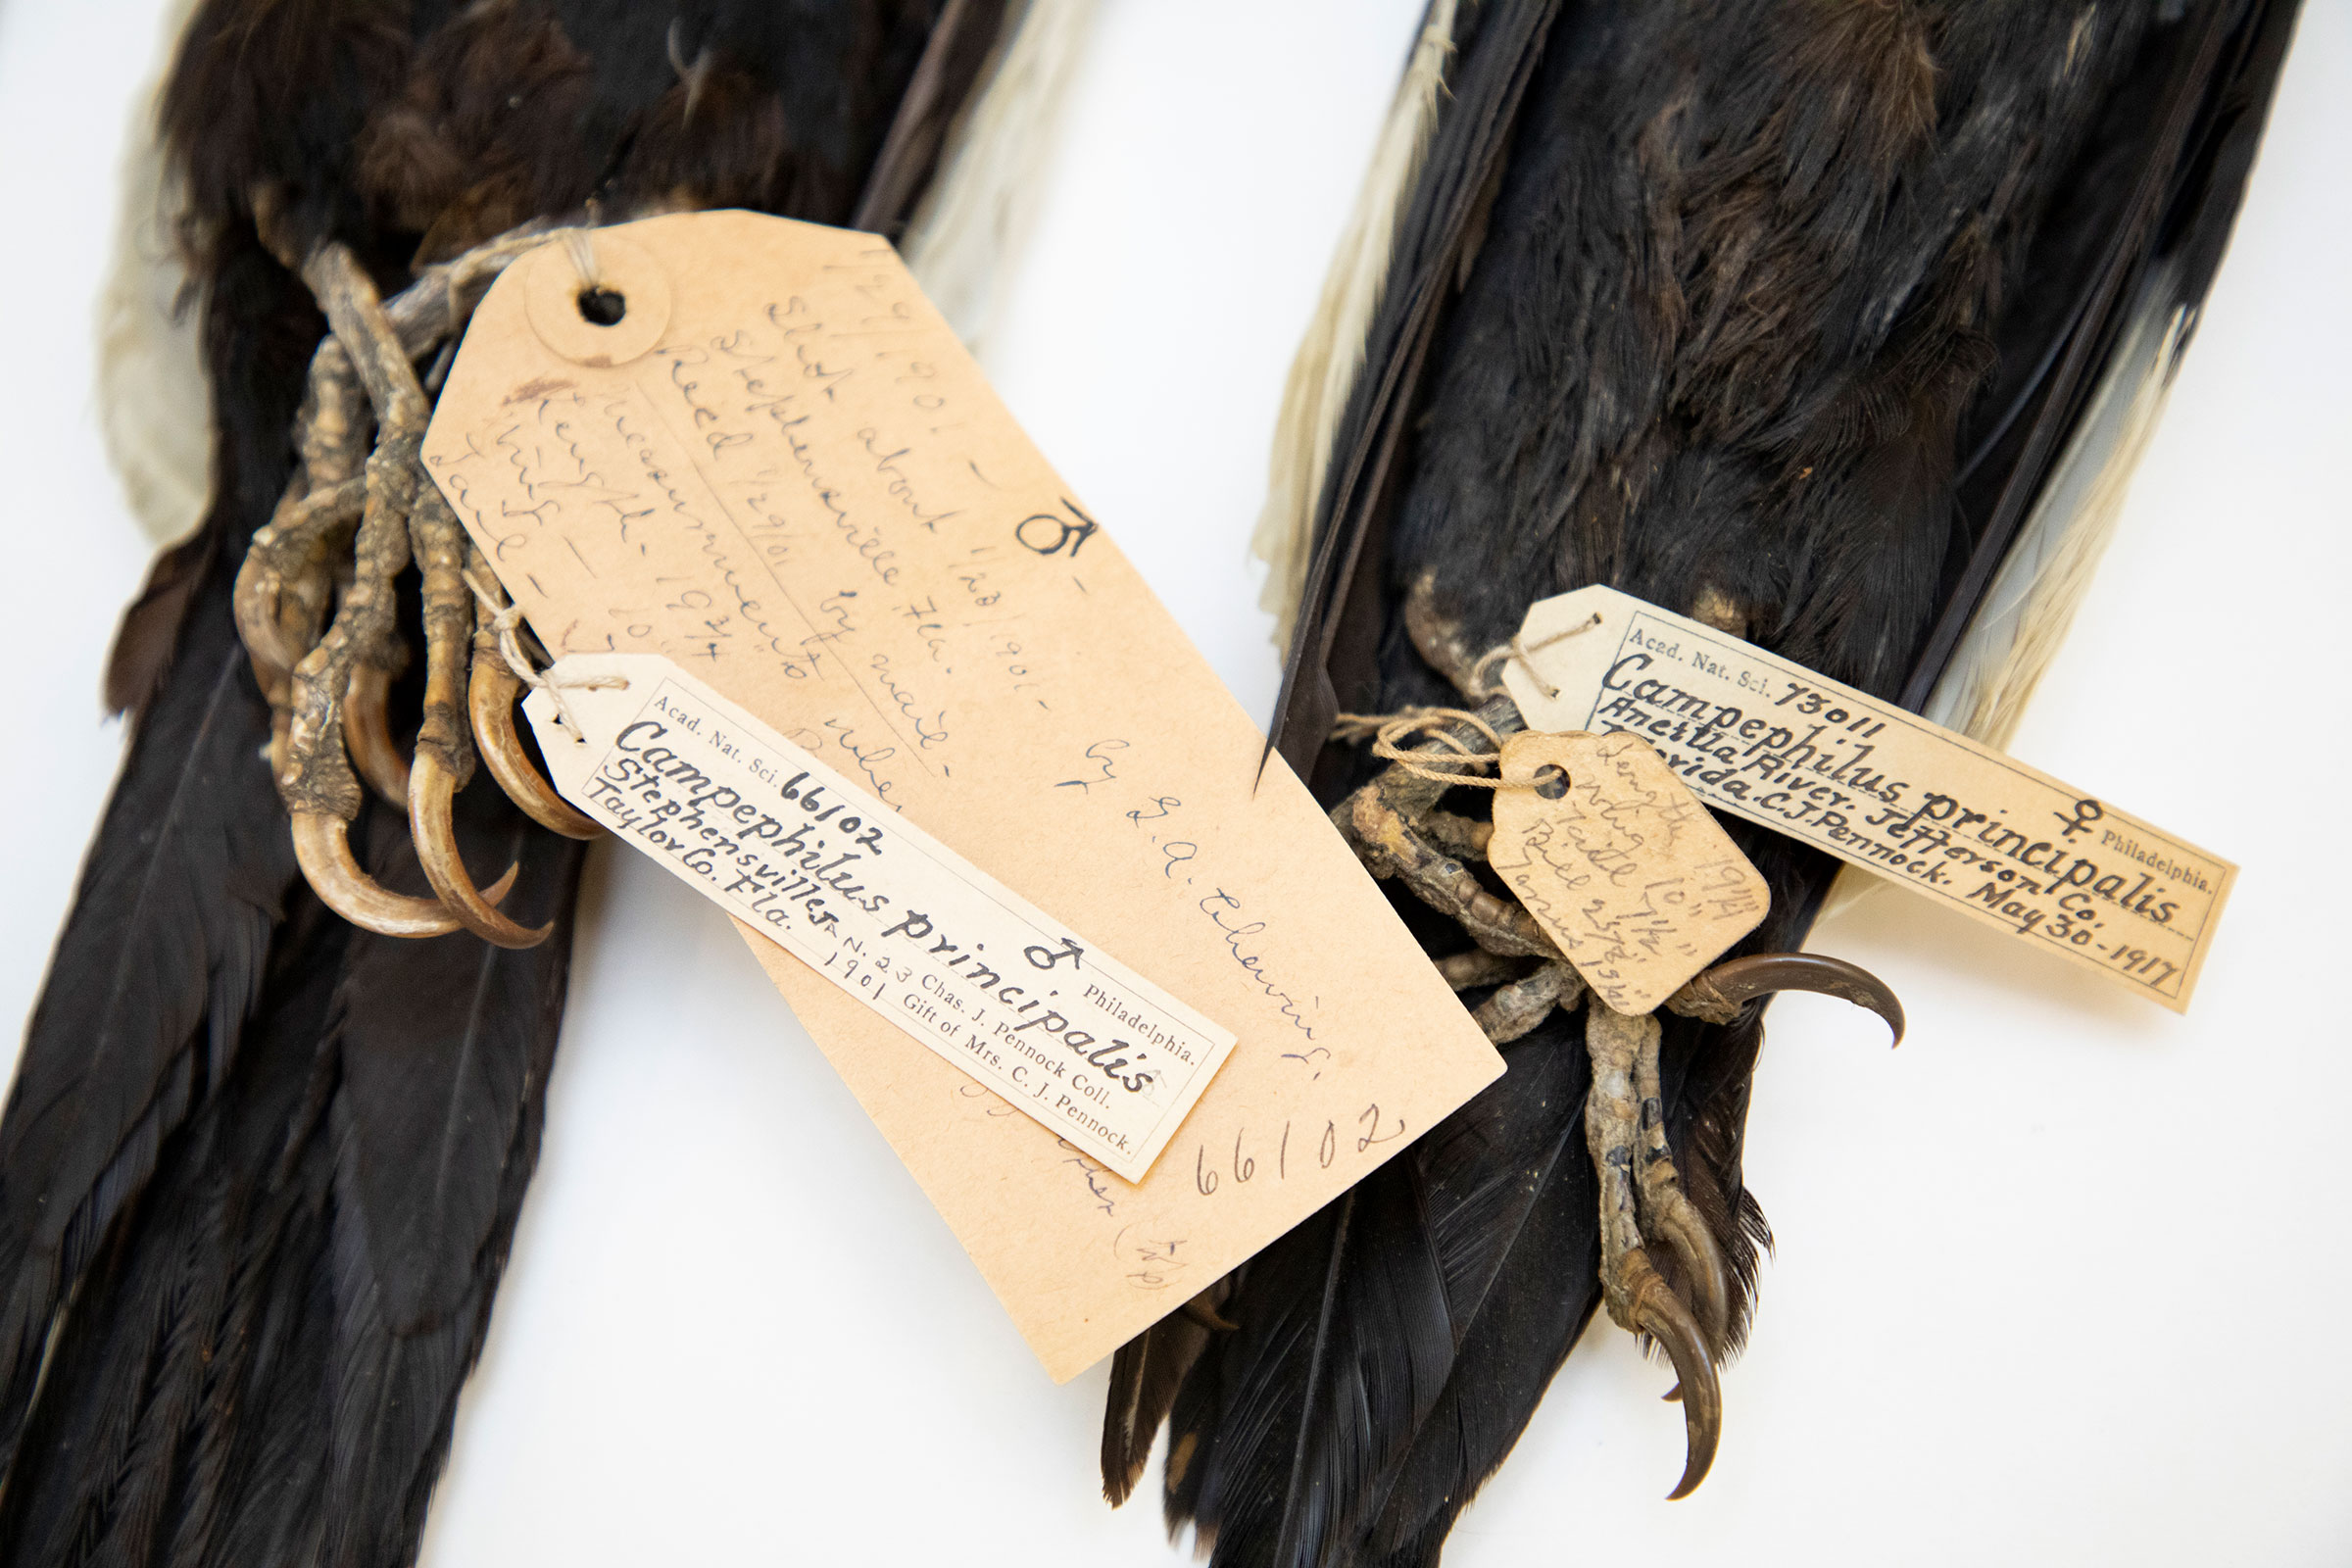 Ivory-billed Woodpeckers from Charles Pennock's collection at The Academy of Natural Sciences of Drexel University in Philadelphia, Pa.